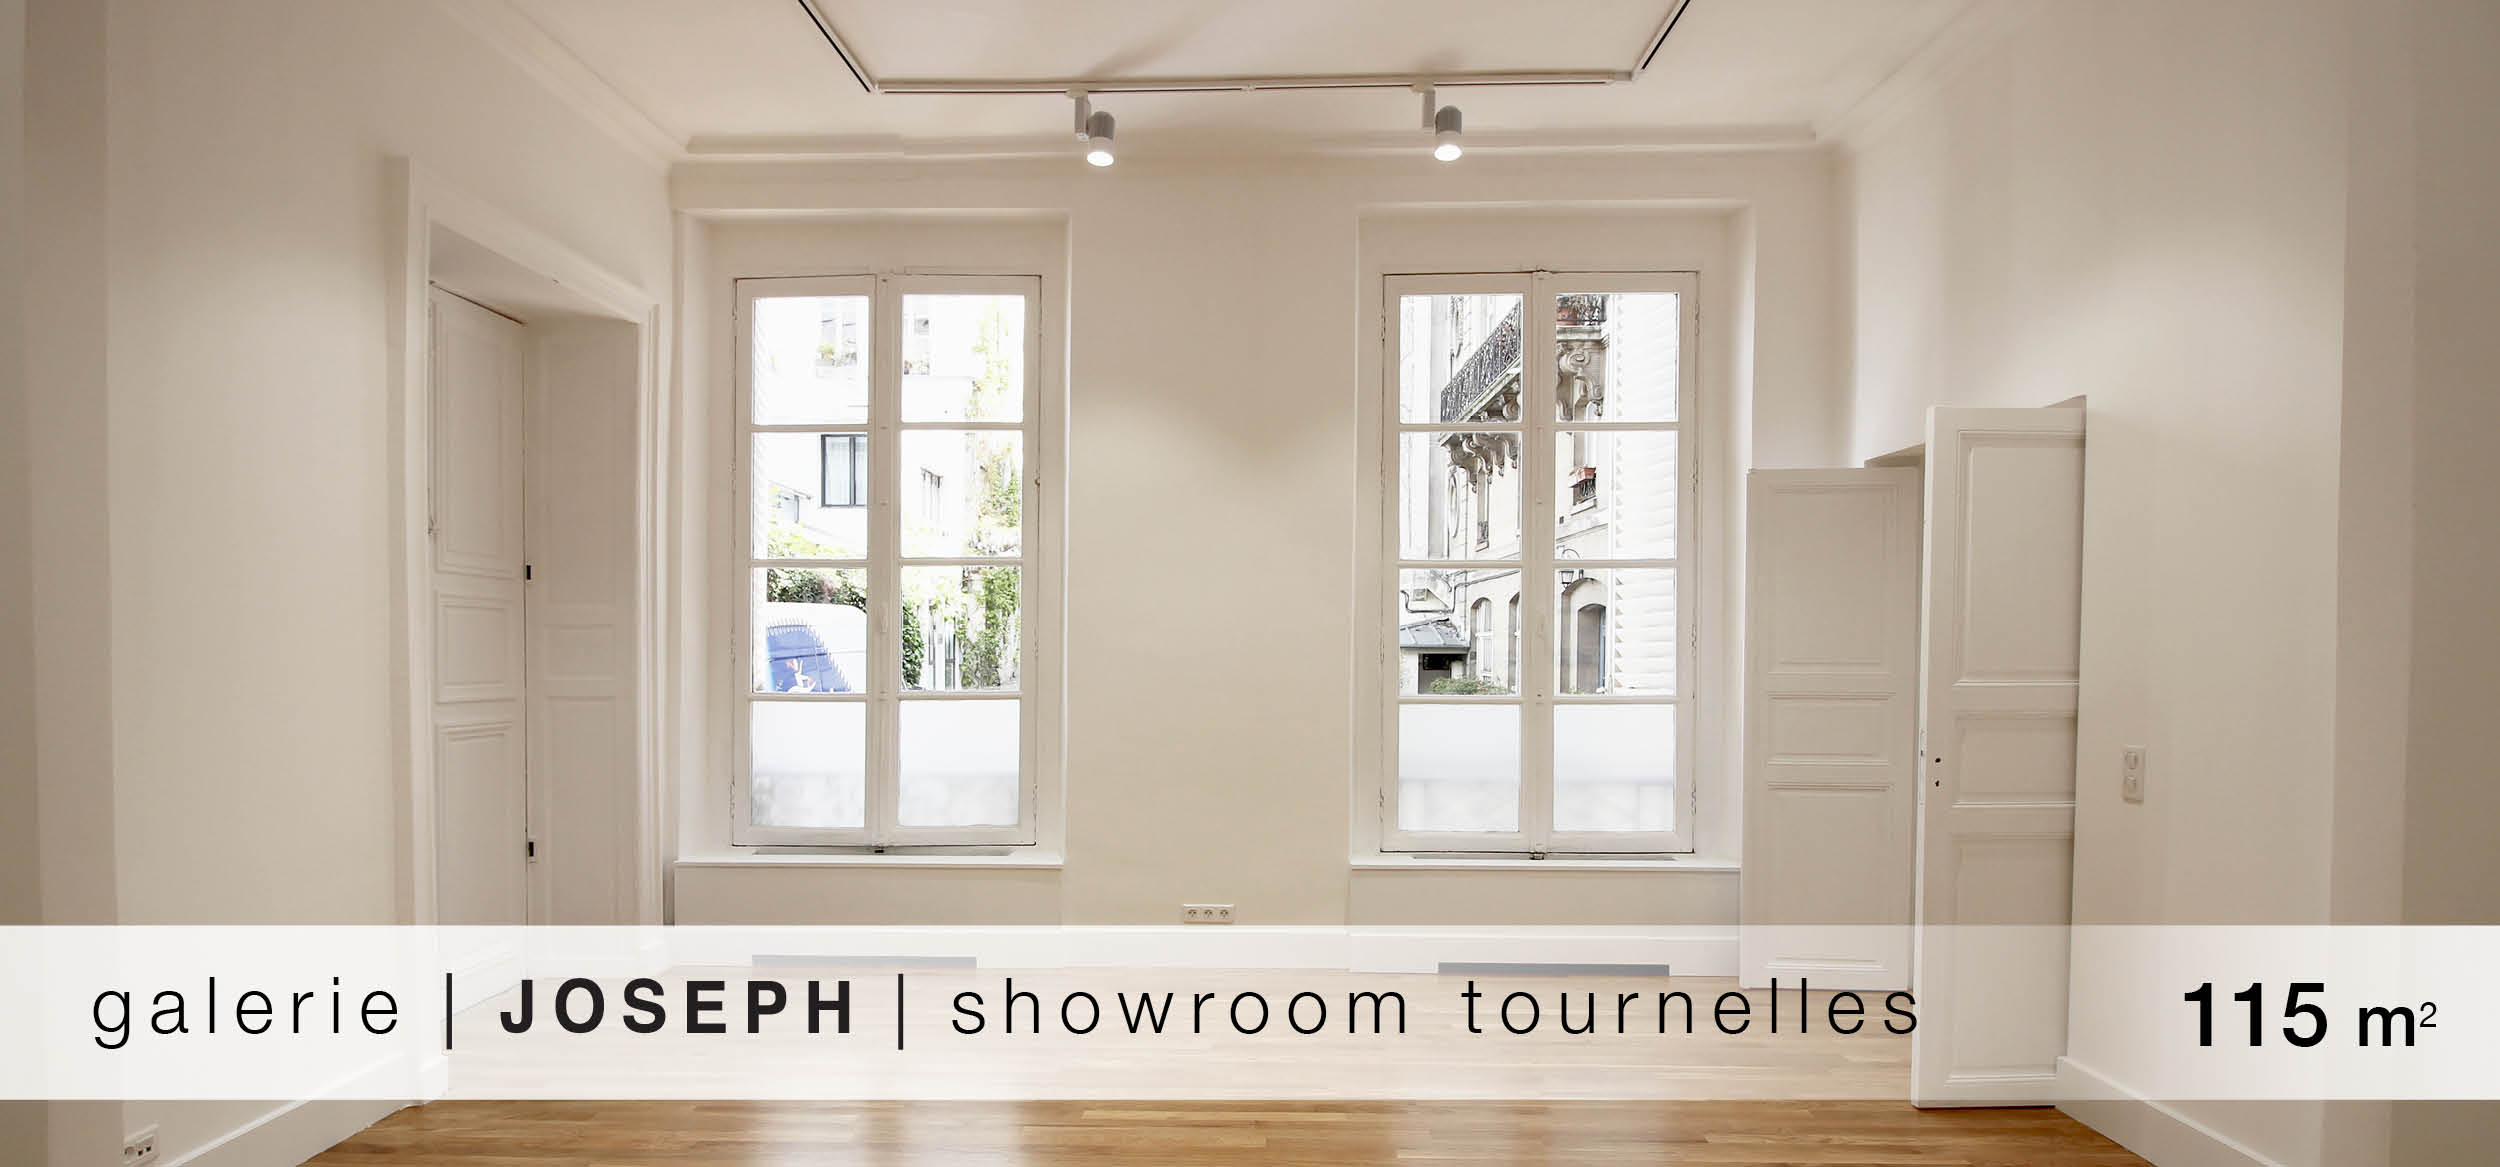 galerie Joseph Shawroom tournelles location showroom